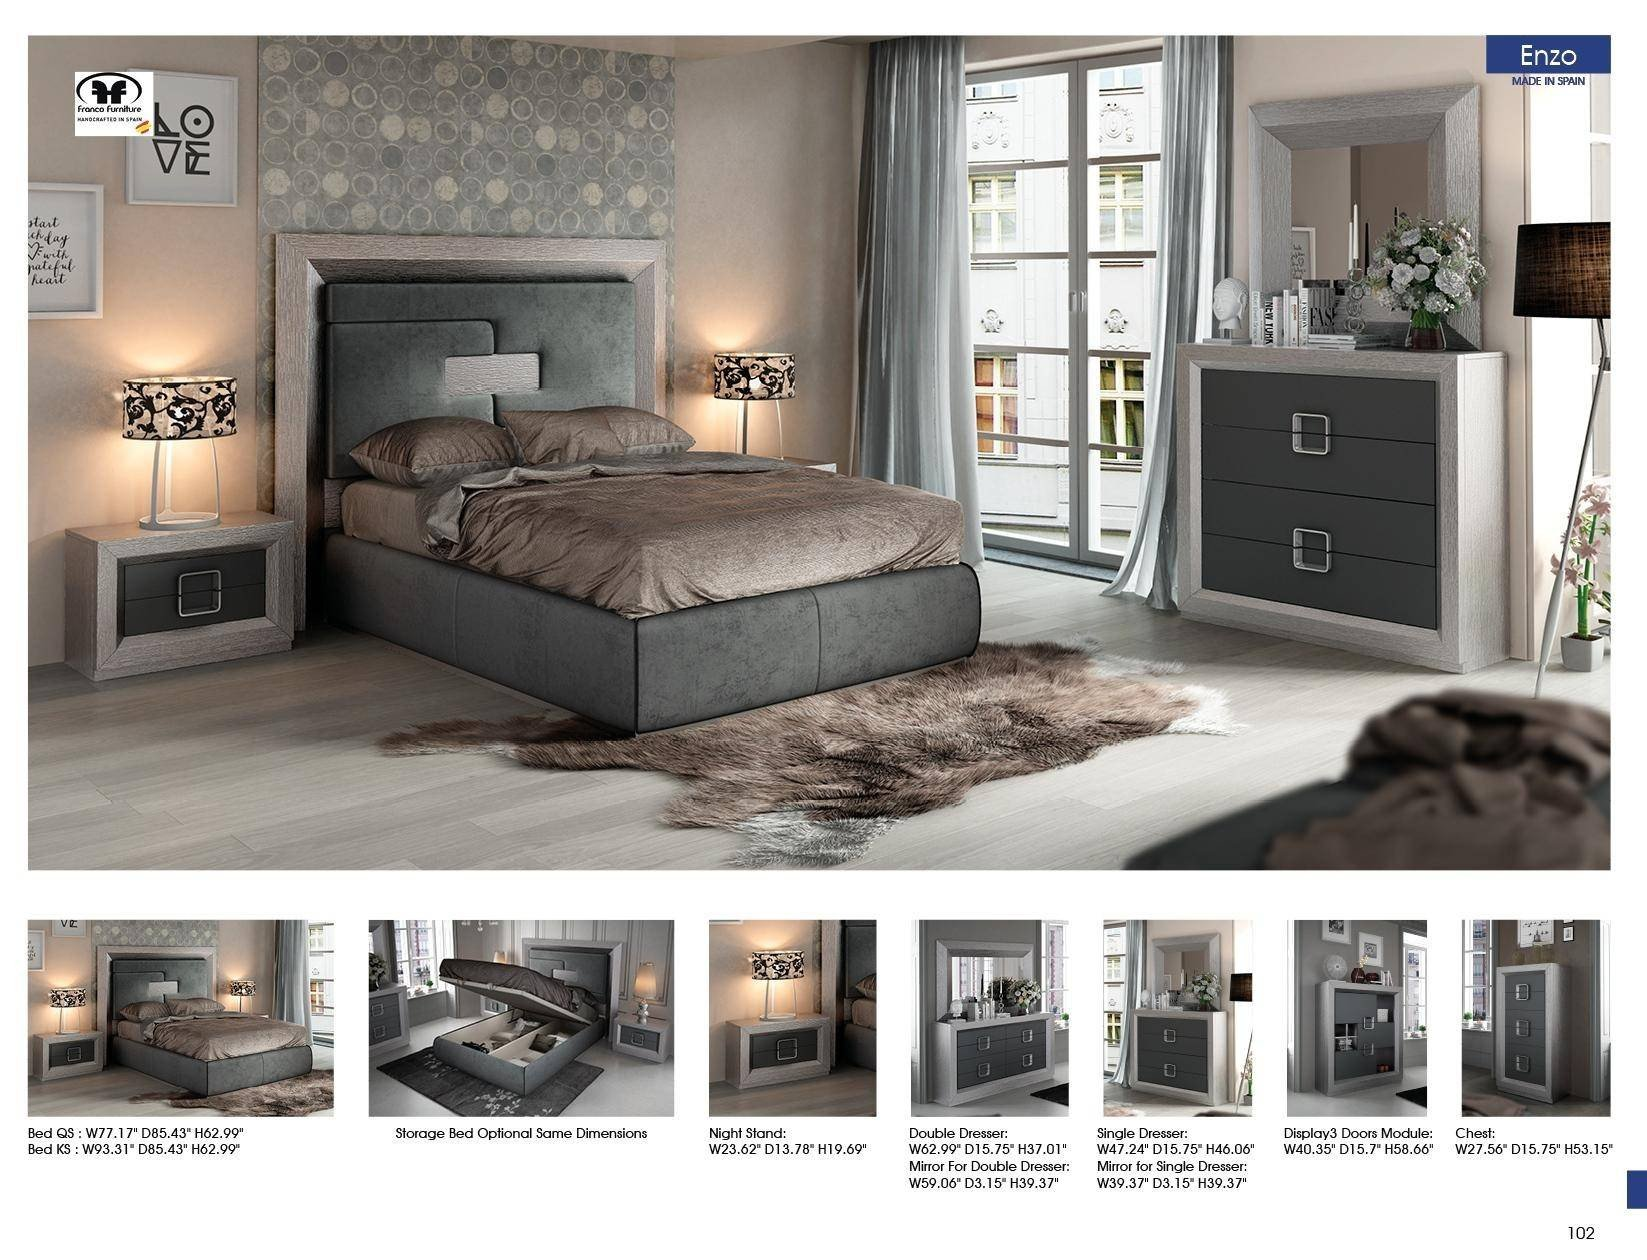 Bedroom Set with Mattress Awesome Esf Enzo King Platform Bedroom Set 5 Pcs In Gray Fabric